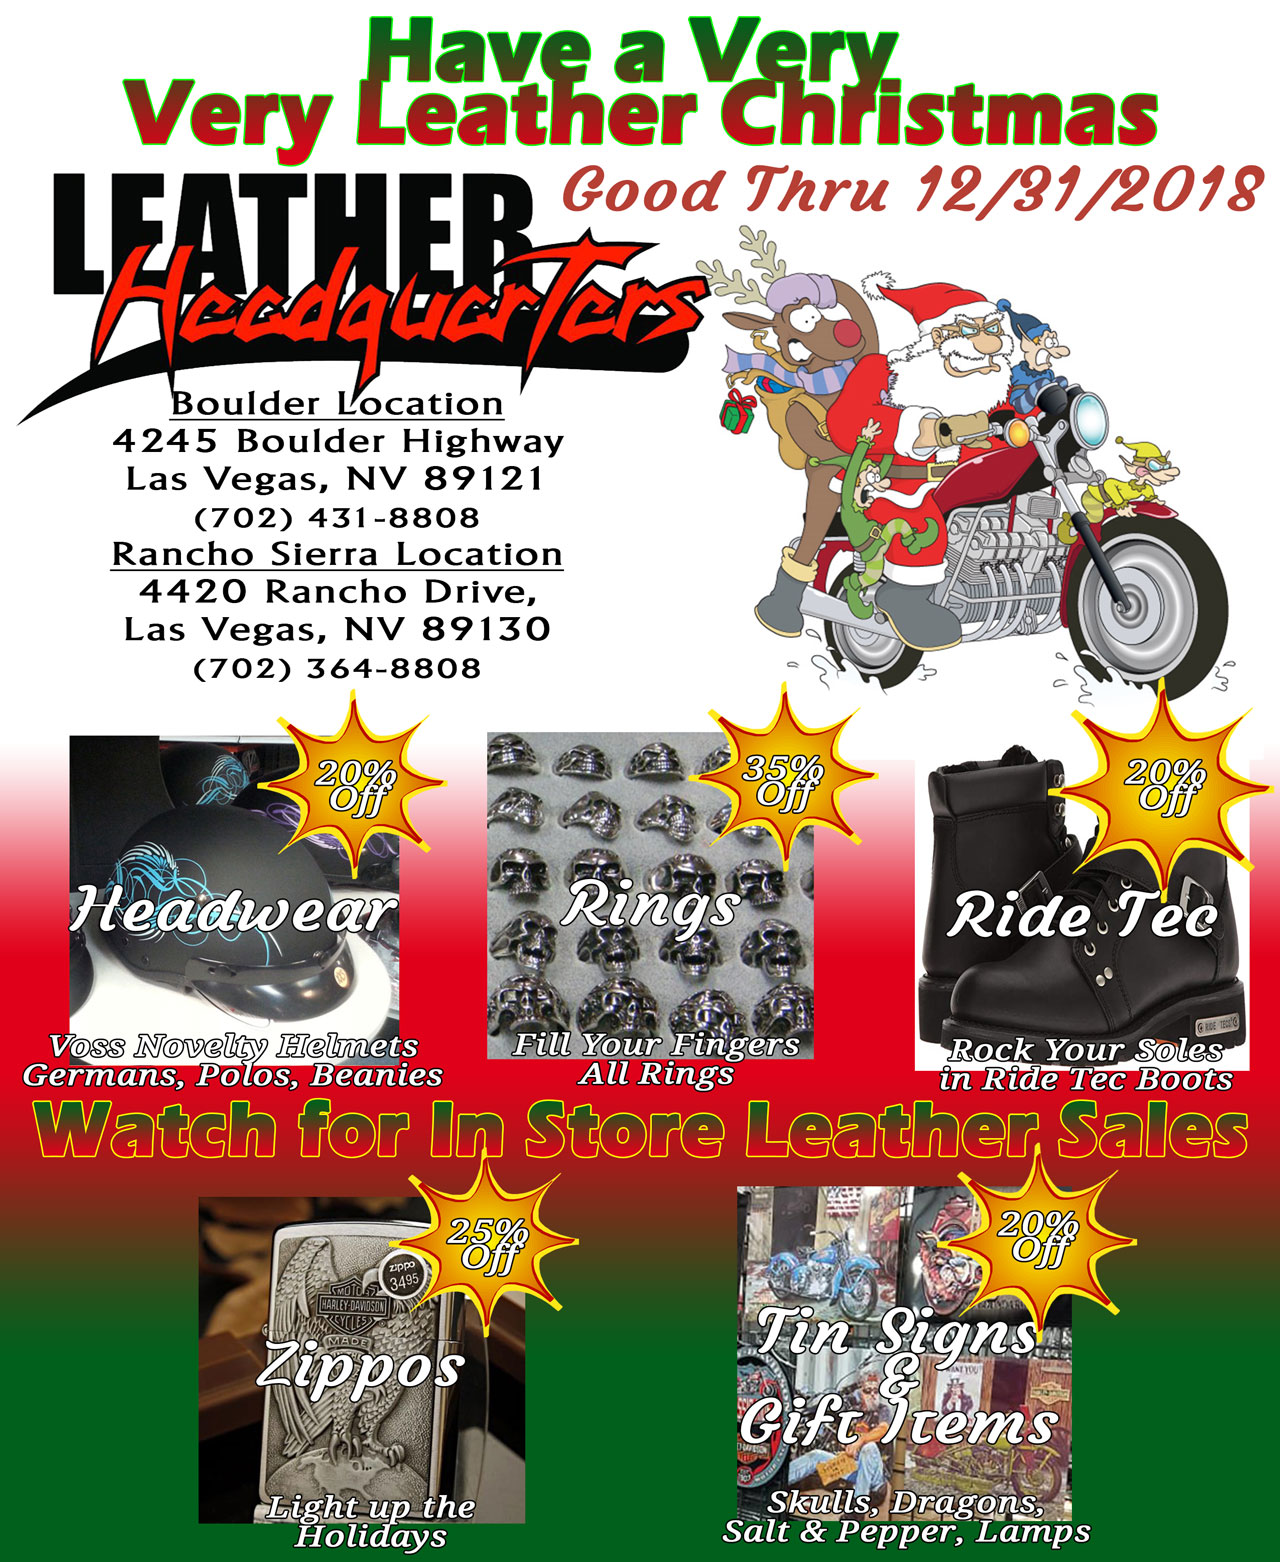 Have A Very Very Leather Christmas!